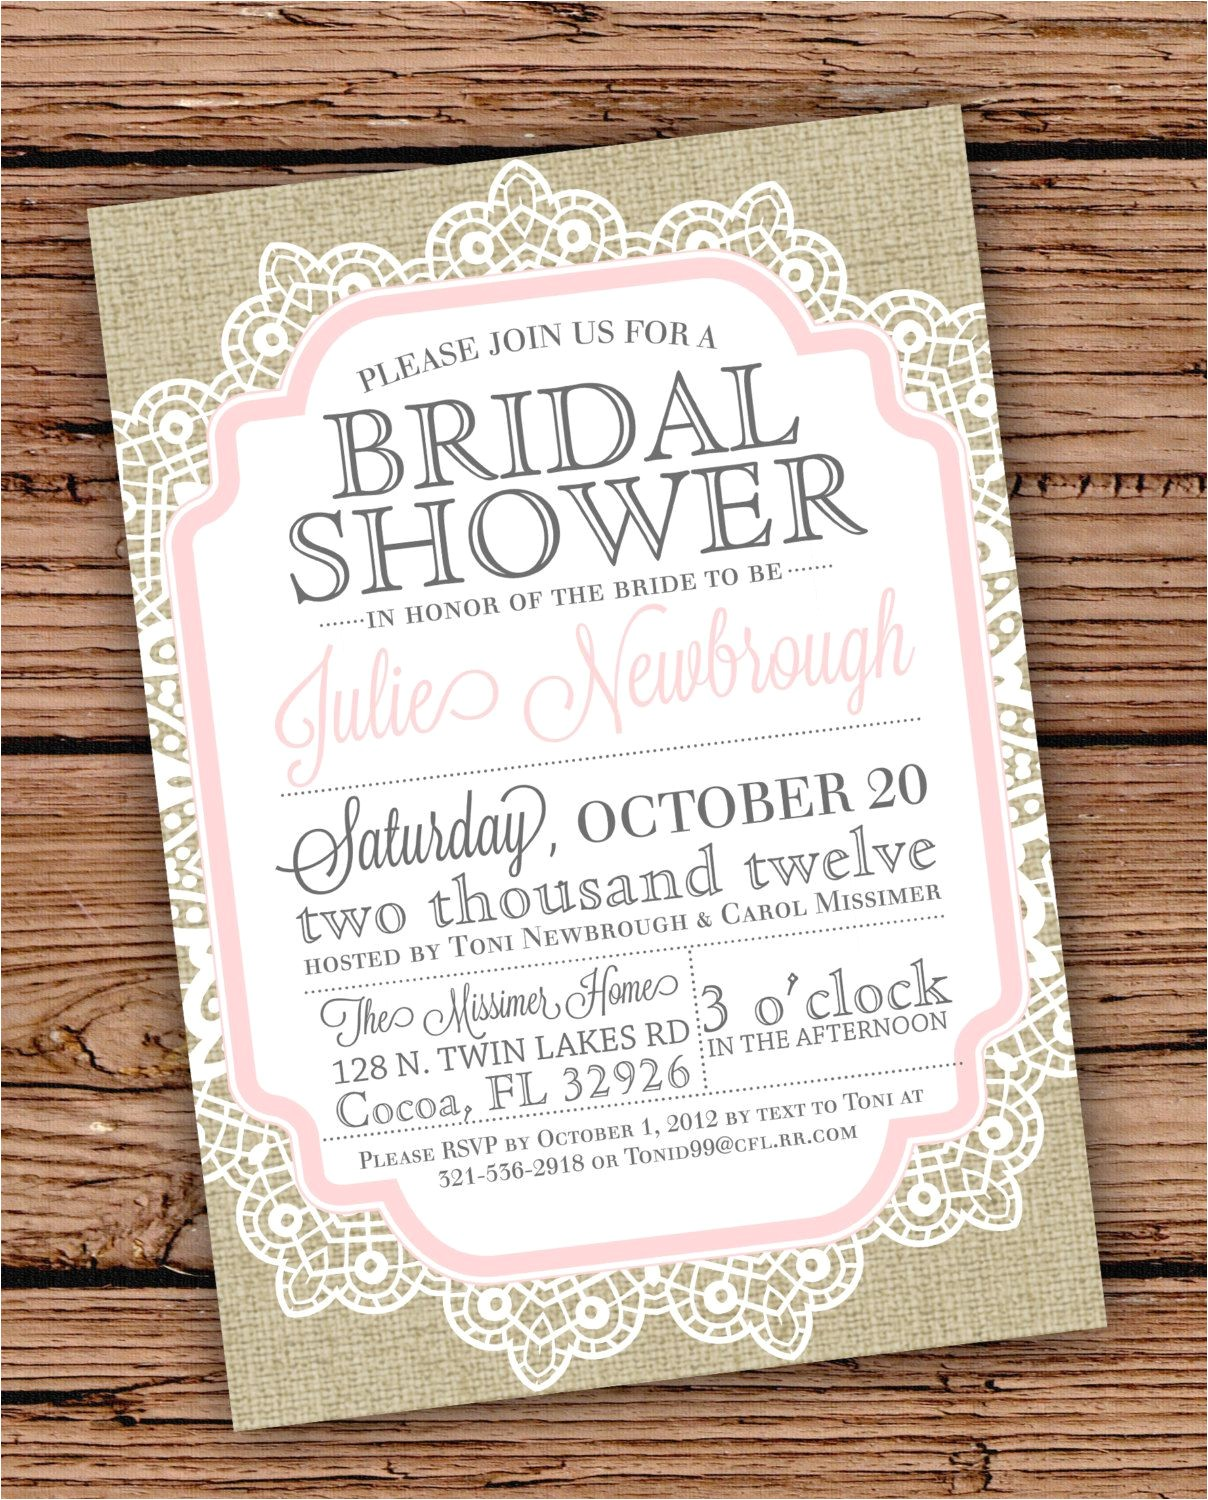 10 stirring vintage wedding shower invitations with unique font